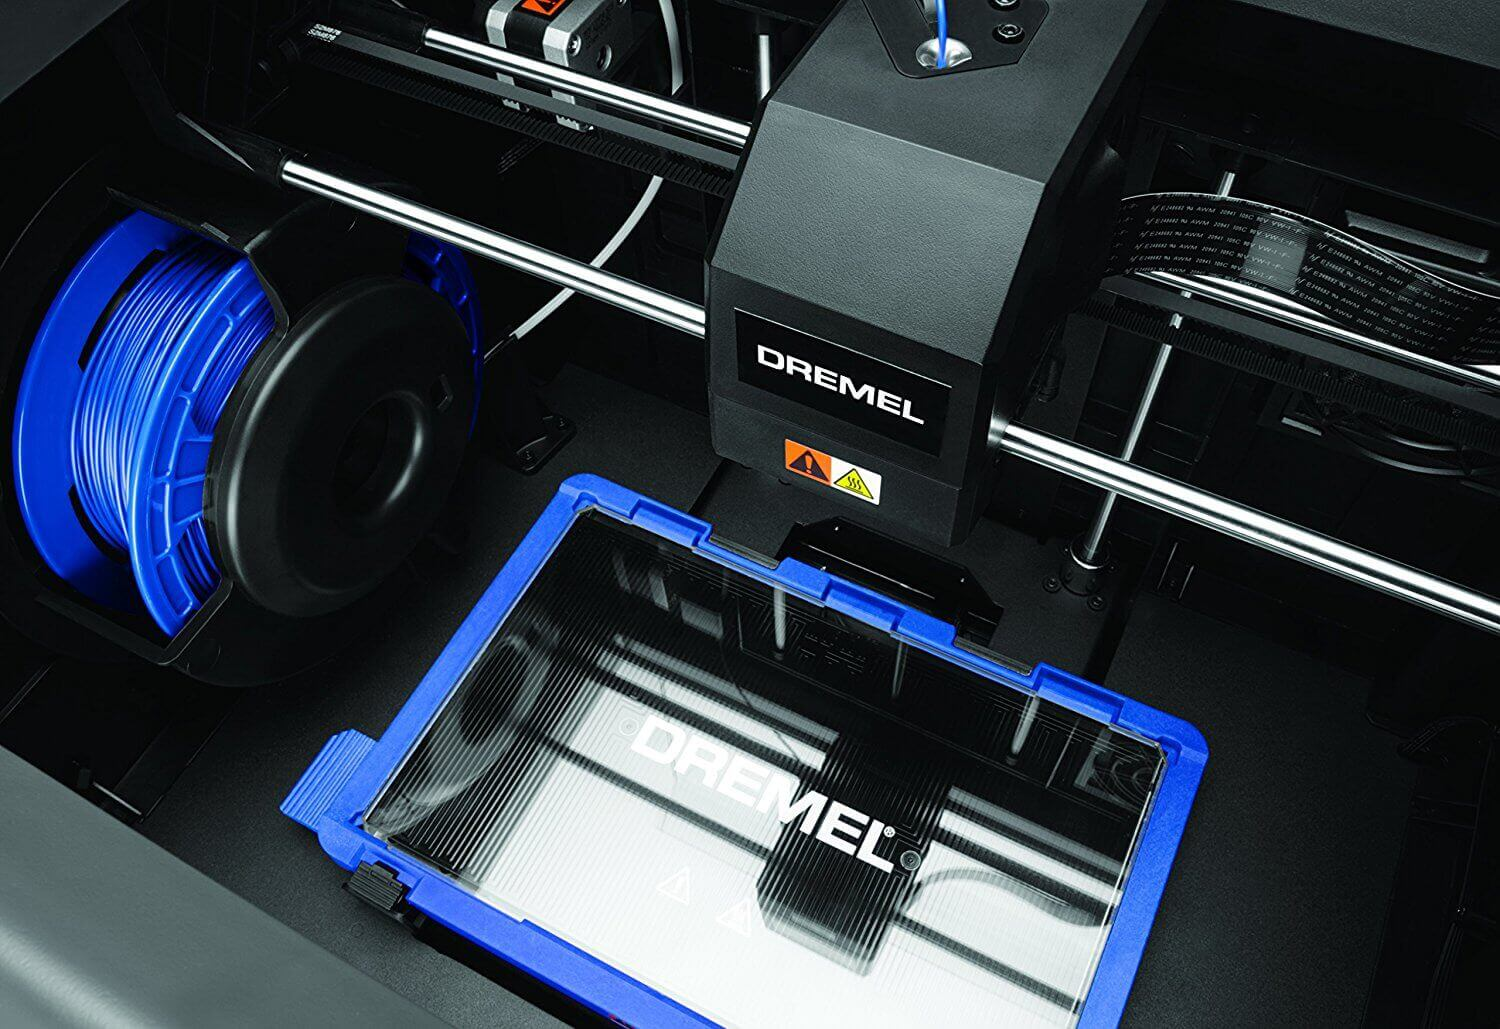 Dremel Launches DigiLab 3D45 3D Printer for Advanced Materials | All3DP